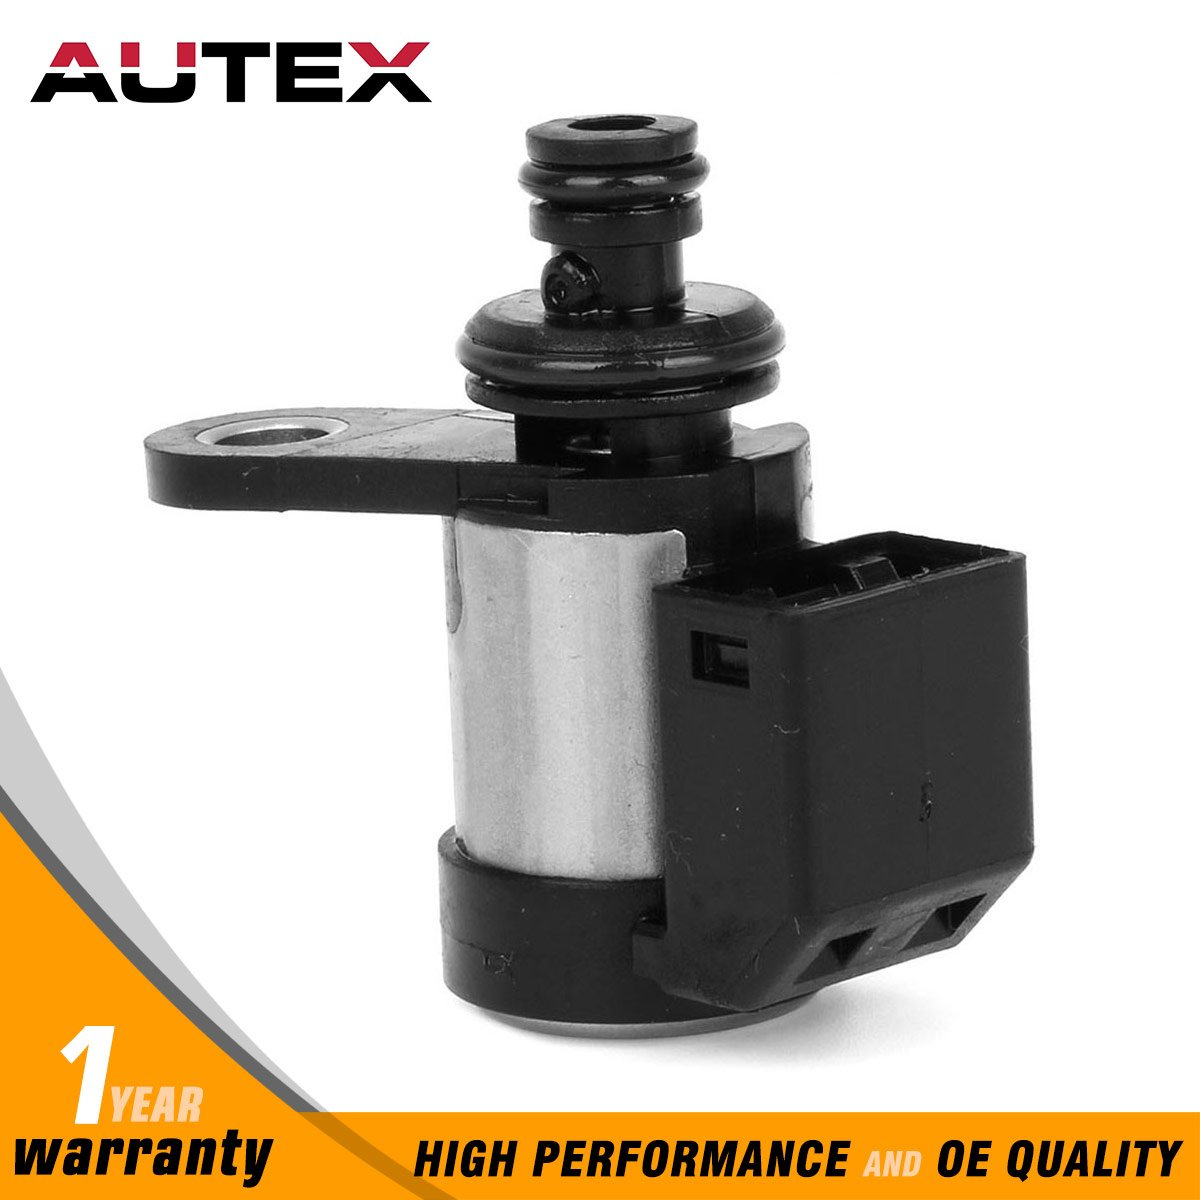 AUTEX RE5R05A 63421 Transmission PWM Line Pressure/TCC/Front Brake Solenoid 260130031 3194190X01 Compatible with Nissan 2002 Up/replacement for Infinity 2002 Up/compatible with Hyundai 2002 Up